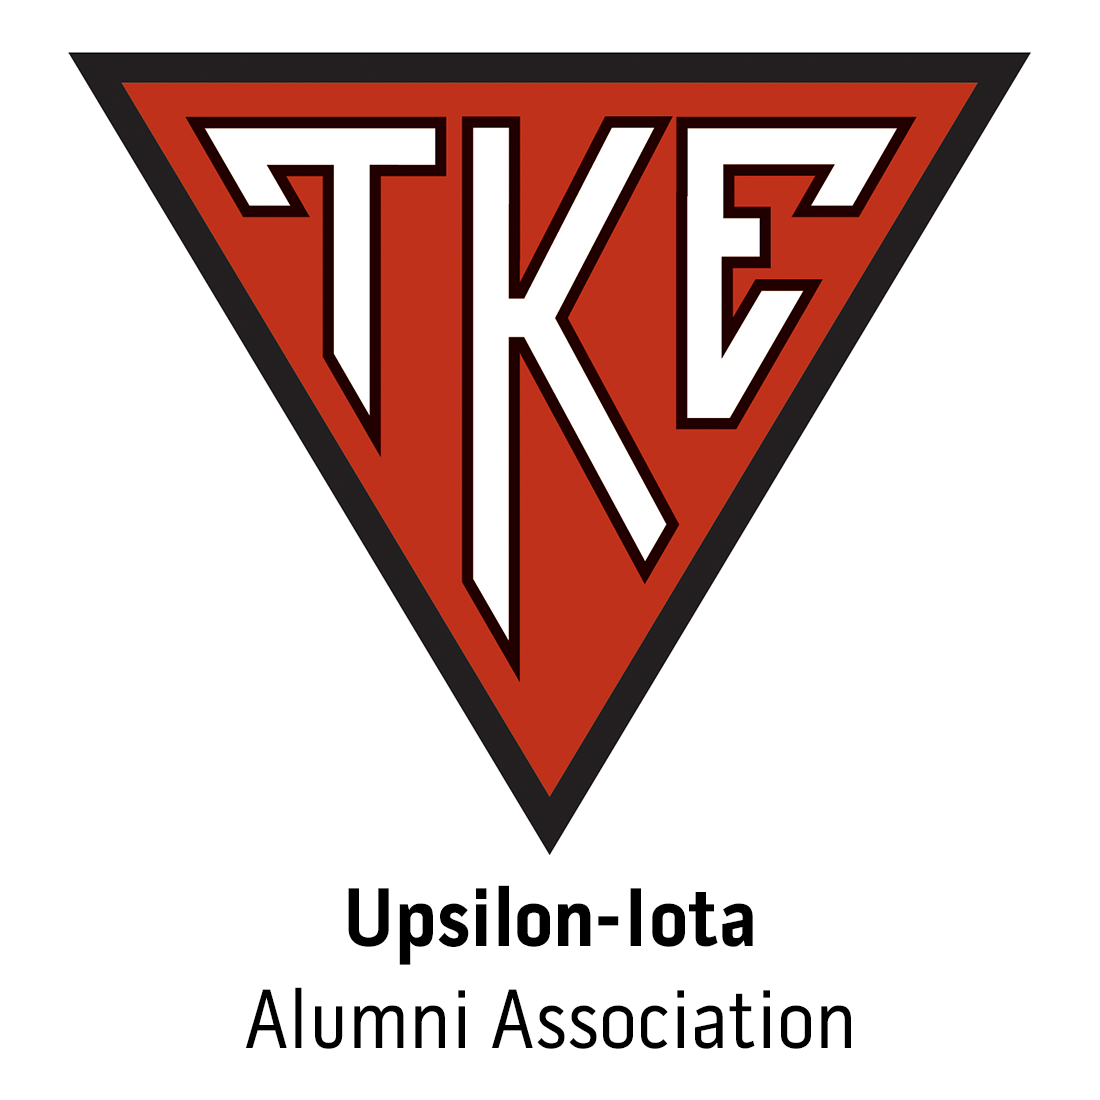 Upsilon-Iota Alumni Association for Indiana University-Purdue University Indianapolis